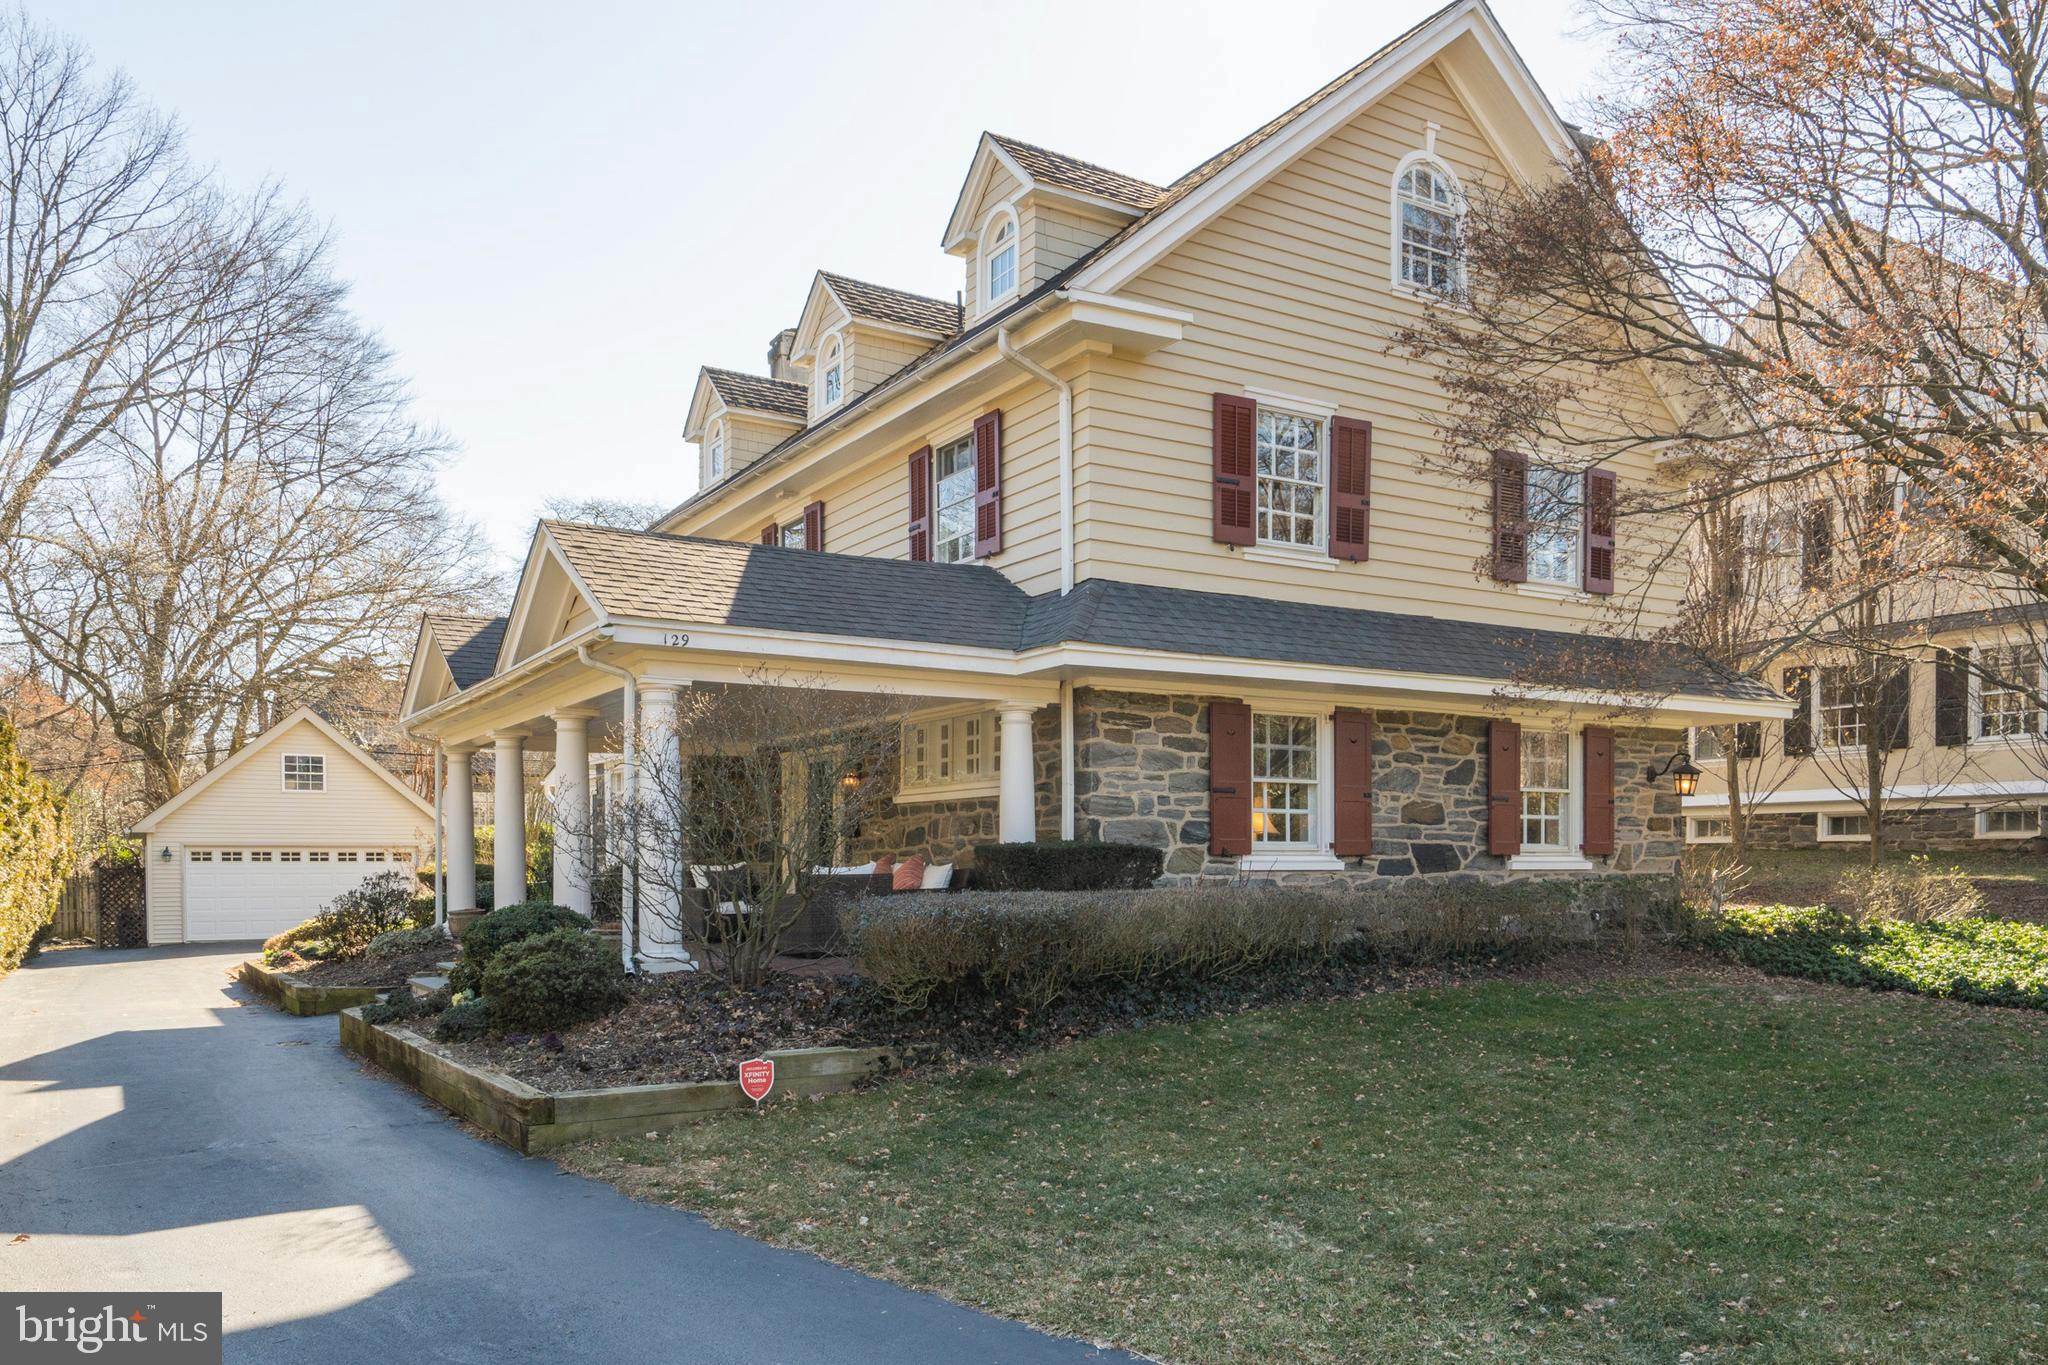 129 VALLEY ROAD, ARDMORE, PA 19003